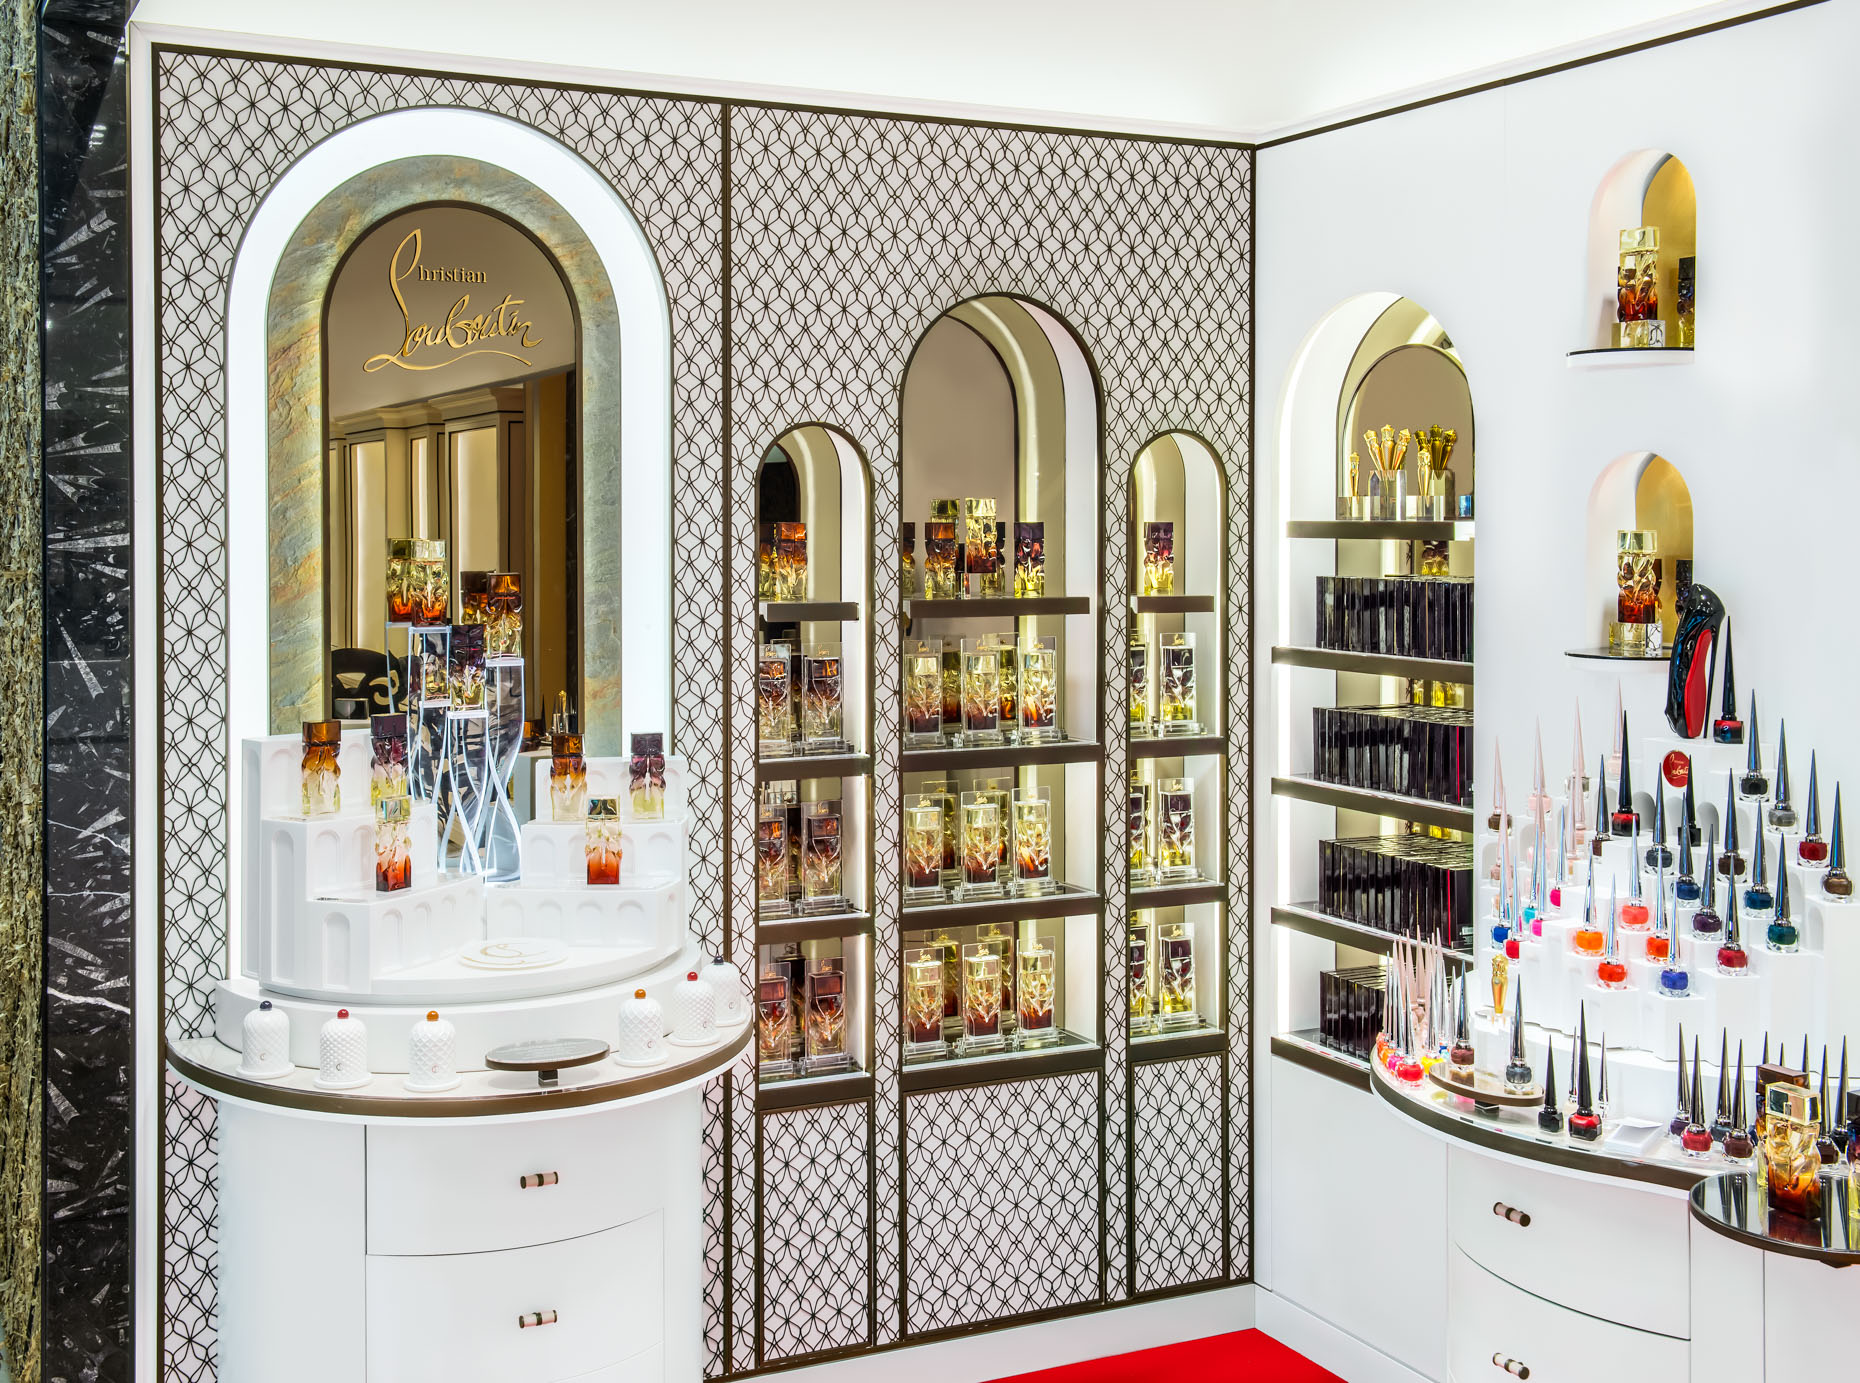 ChristianLouboutin-Interiorstorepop-up-Miami-4